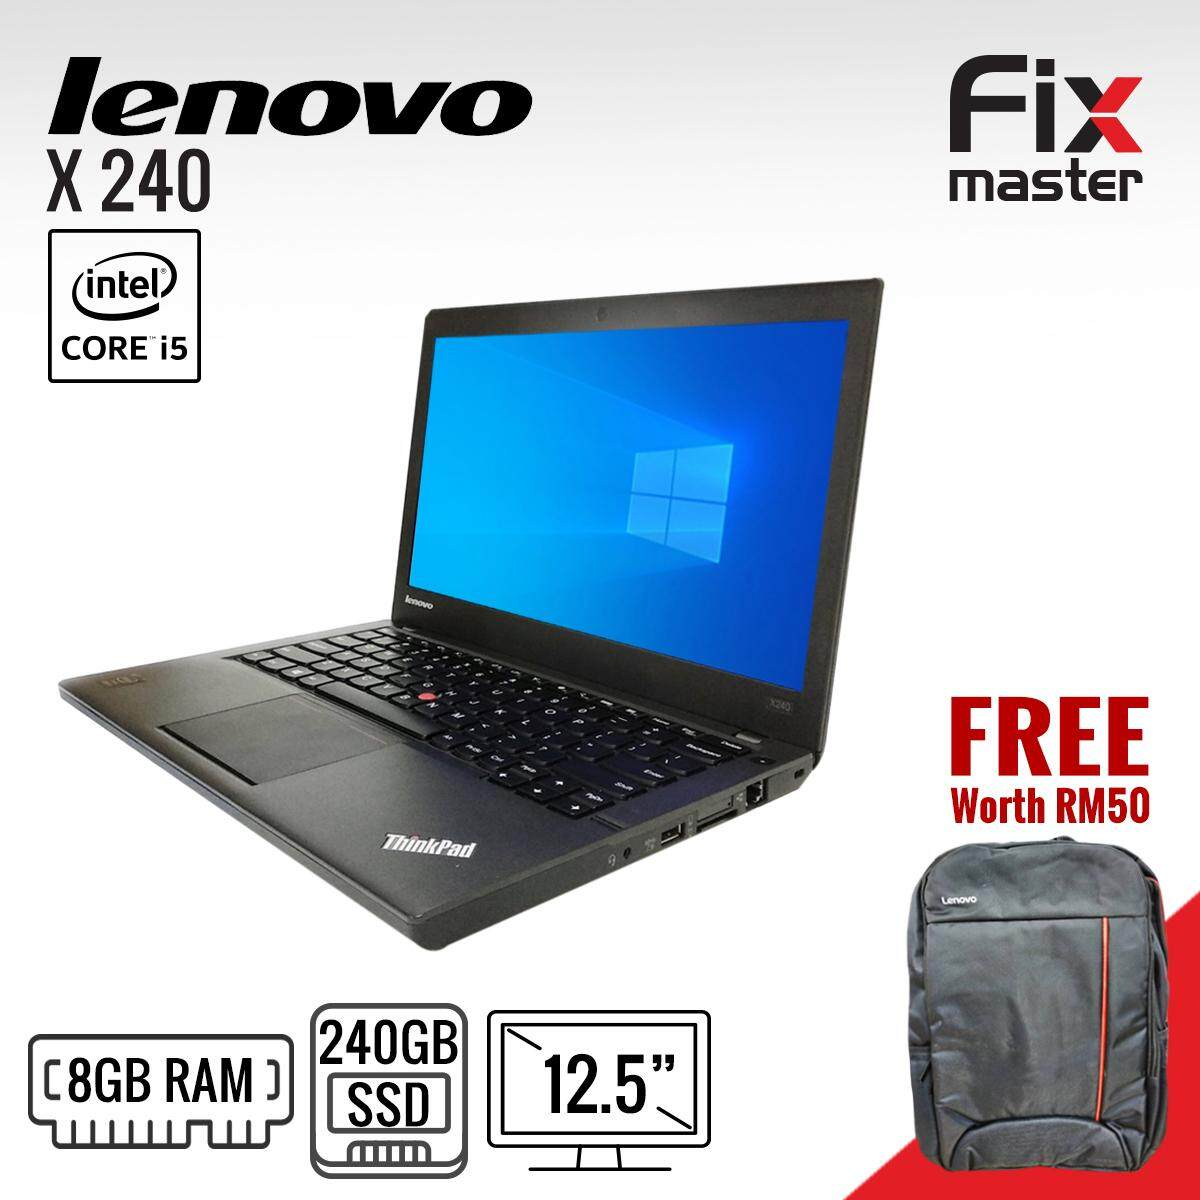 Lenovo ThinkPad X240 Laptop/ Intel Core i5- 4th generation / 12.5 inches / Brand new 120GB SSD / Brand New 4GB RAM / 12 months warranty (Refurbished) / Excitement like brand new Malaysia